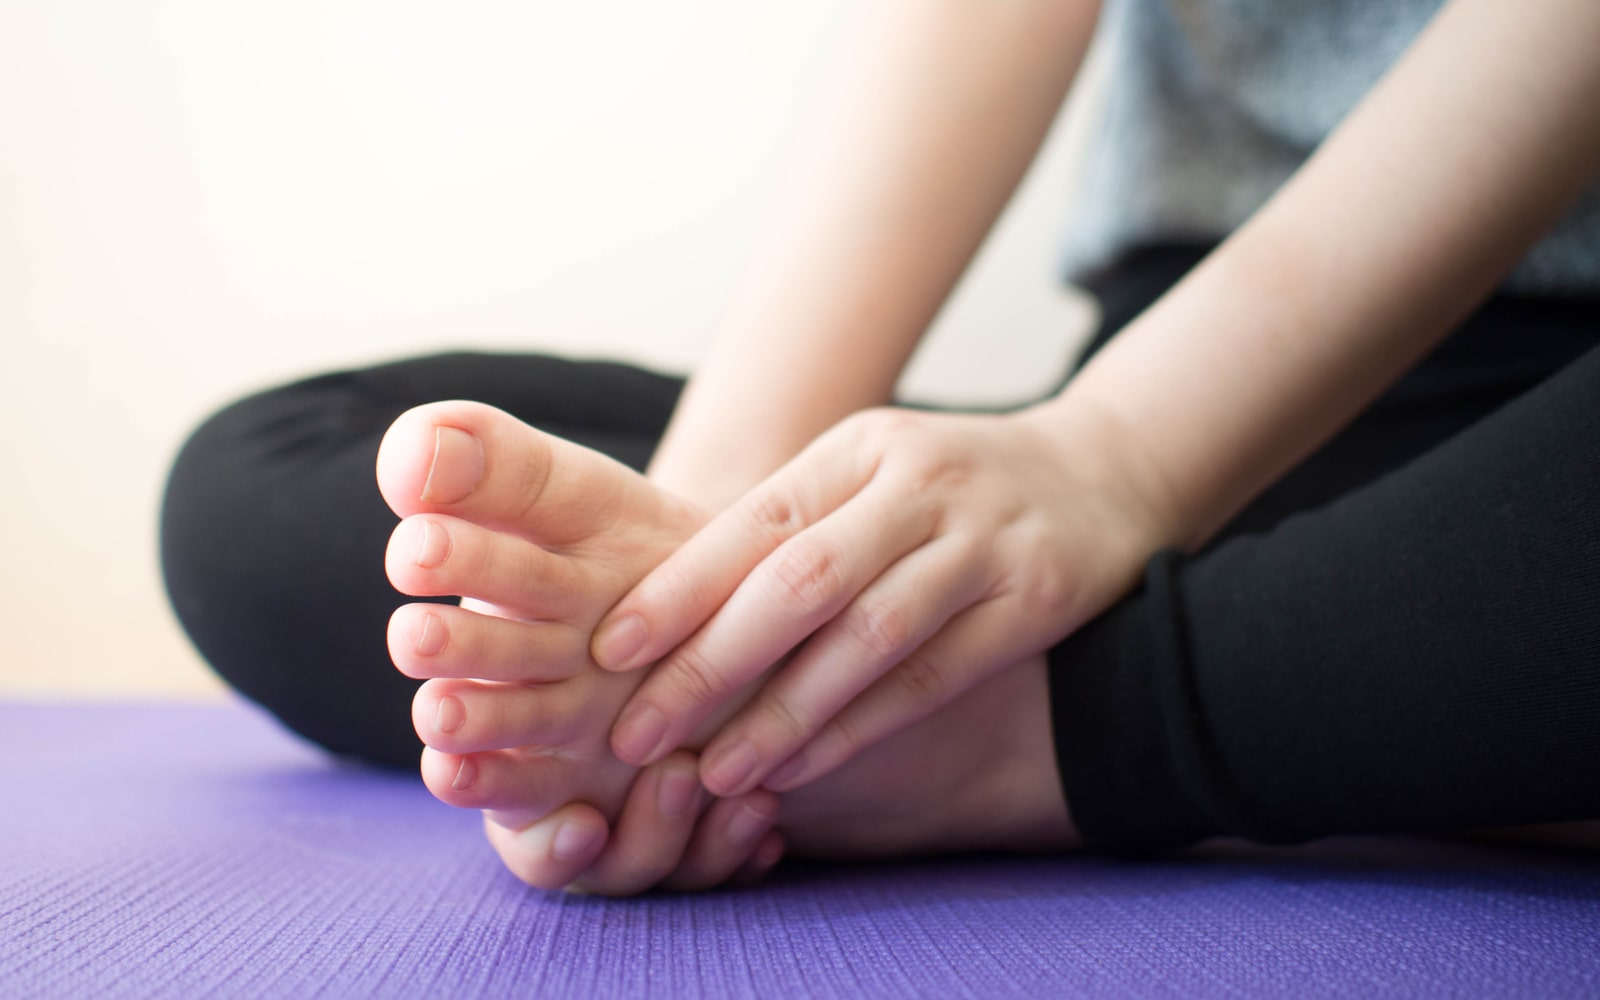 Athlete holding their foot in pain